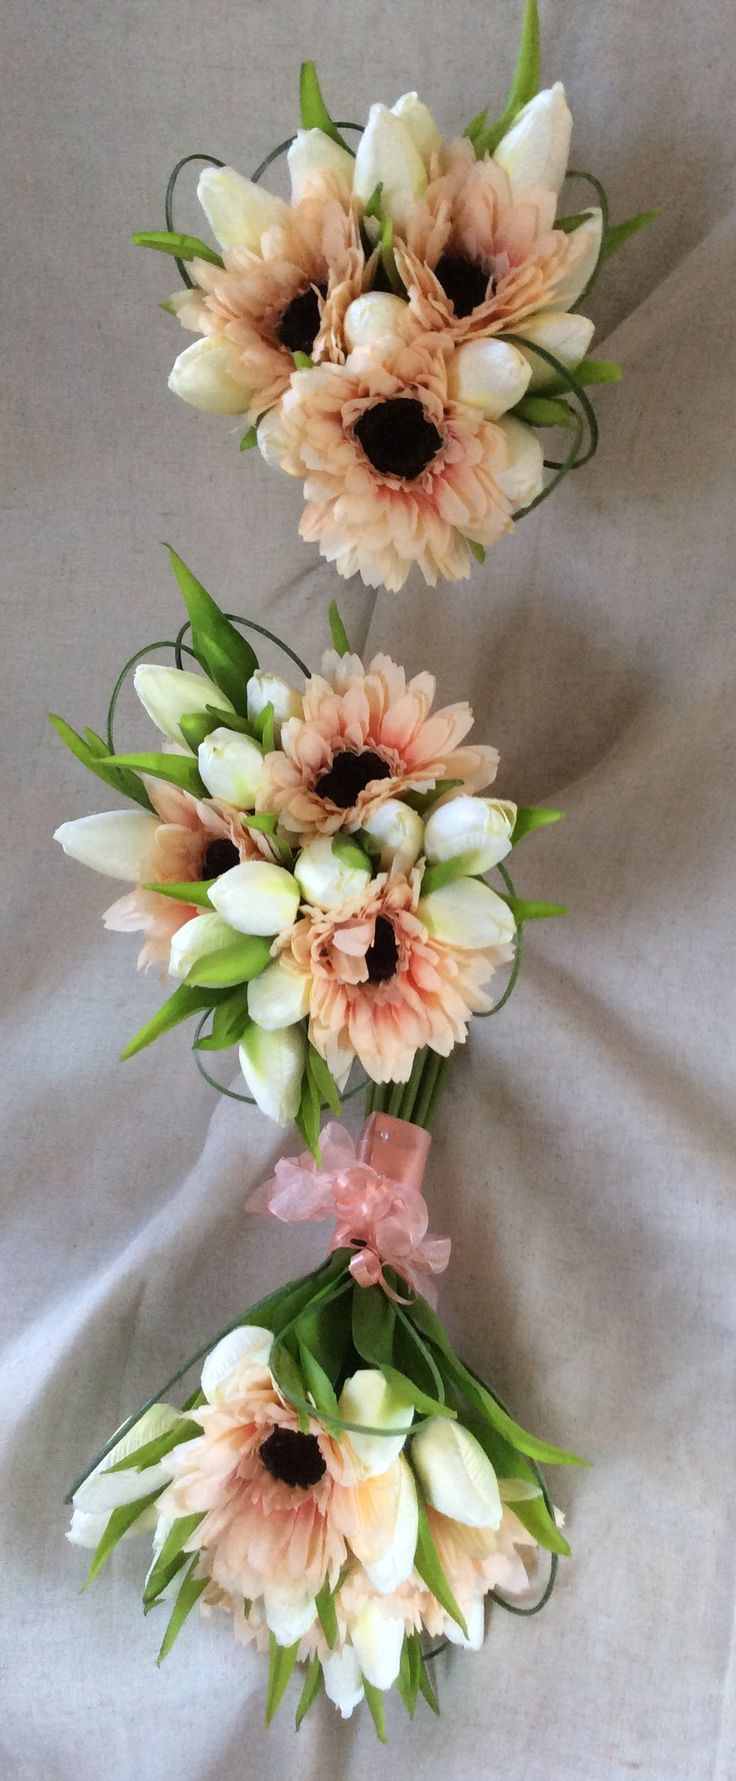 Peach and Ivory gerbera, tulips and roses bouquets by cathey's flowers